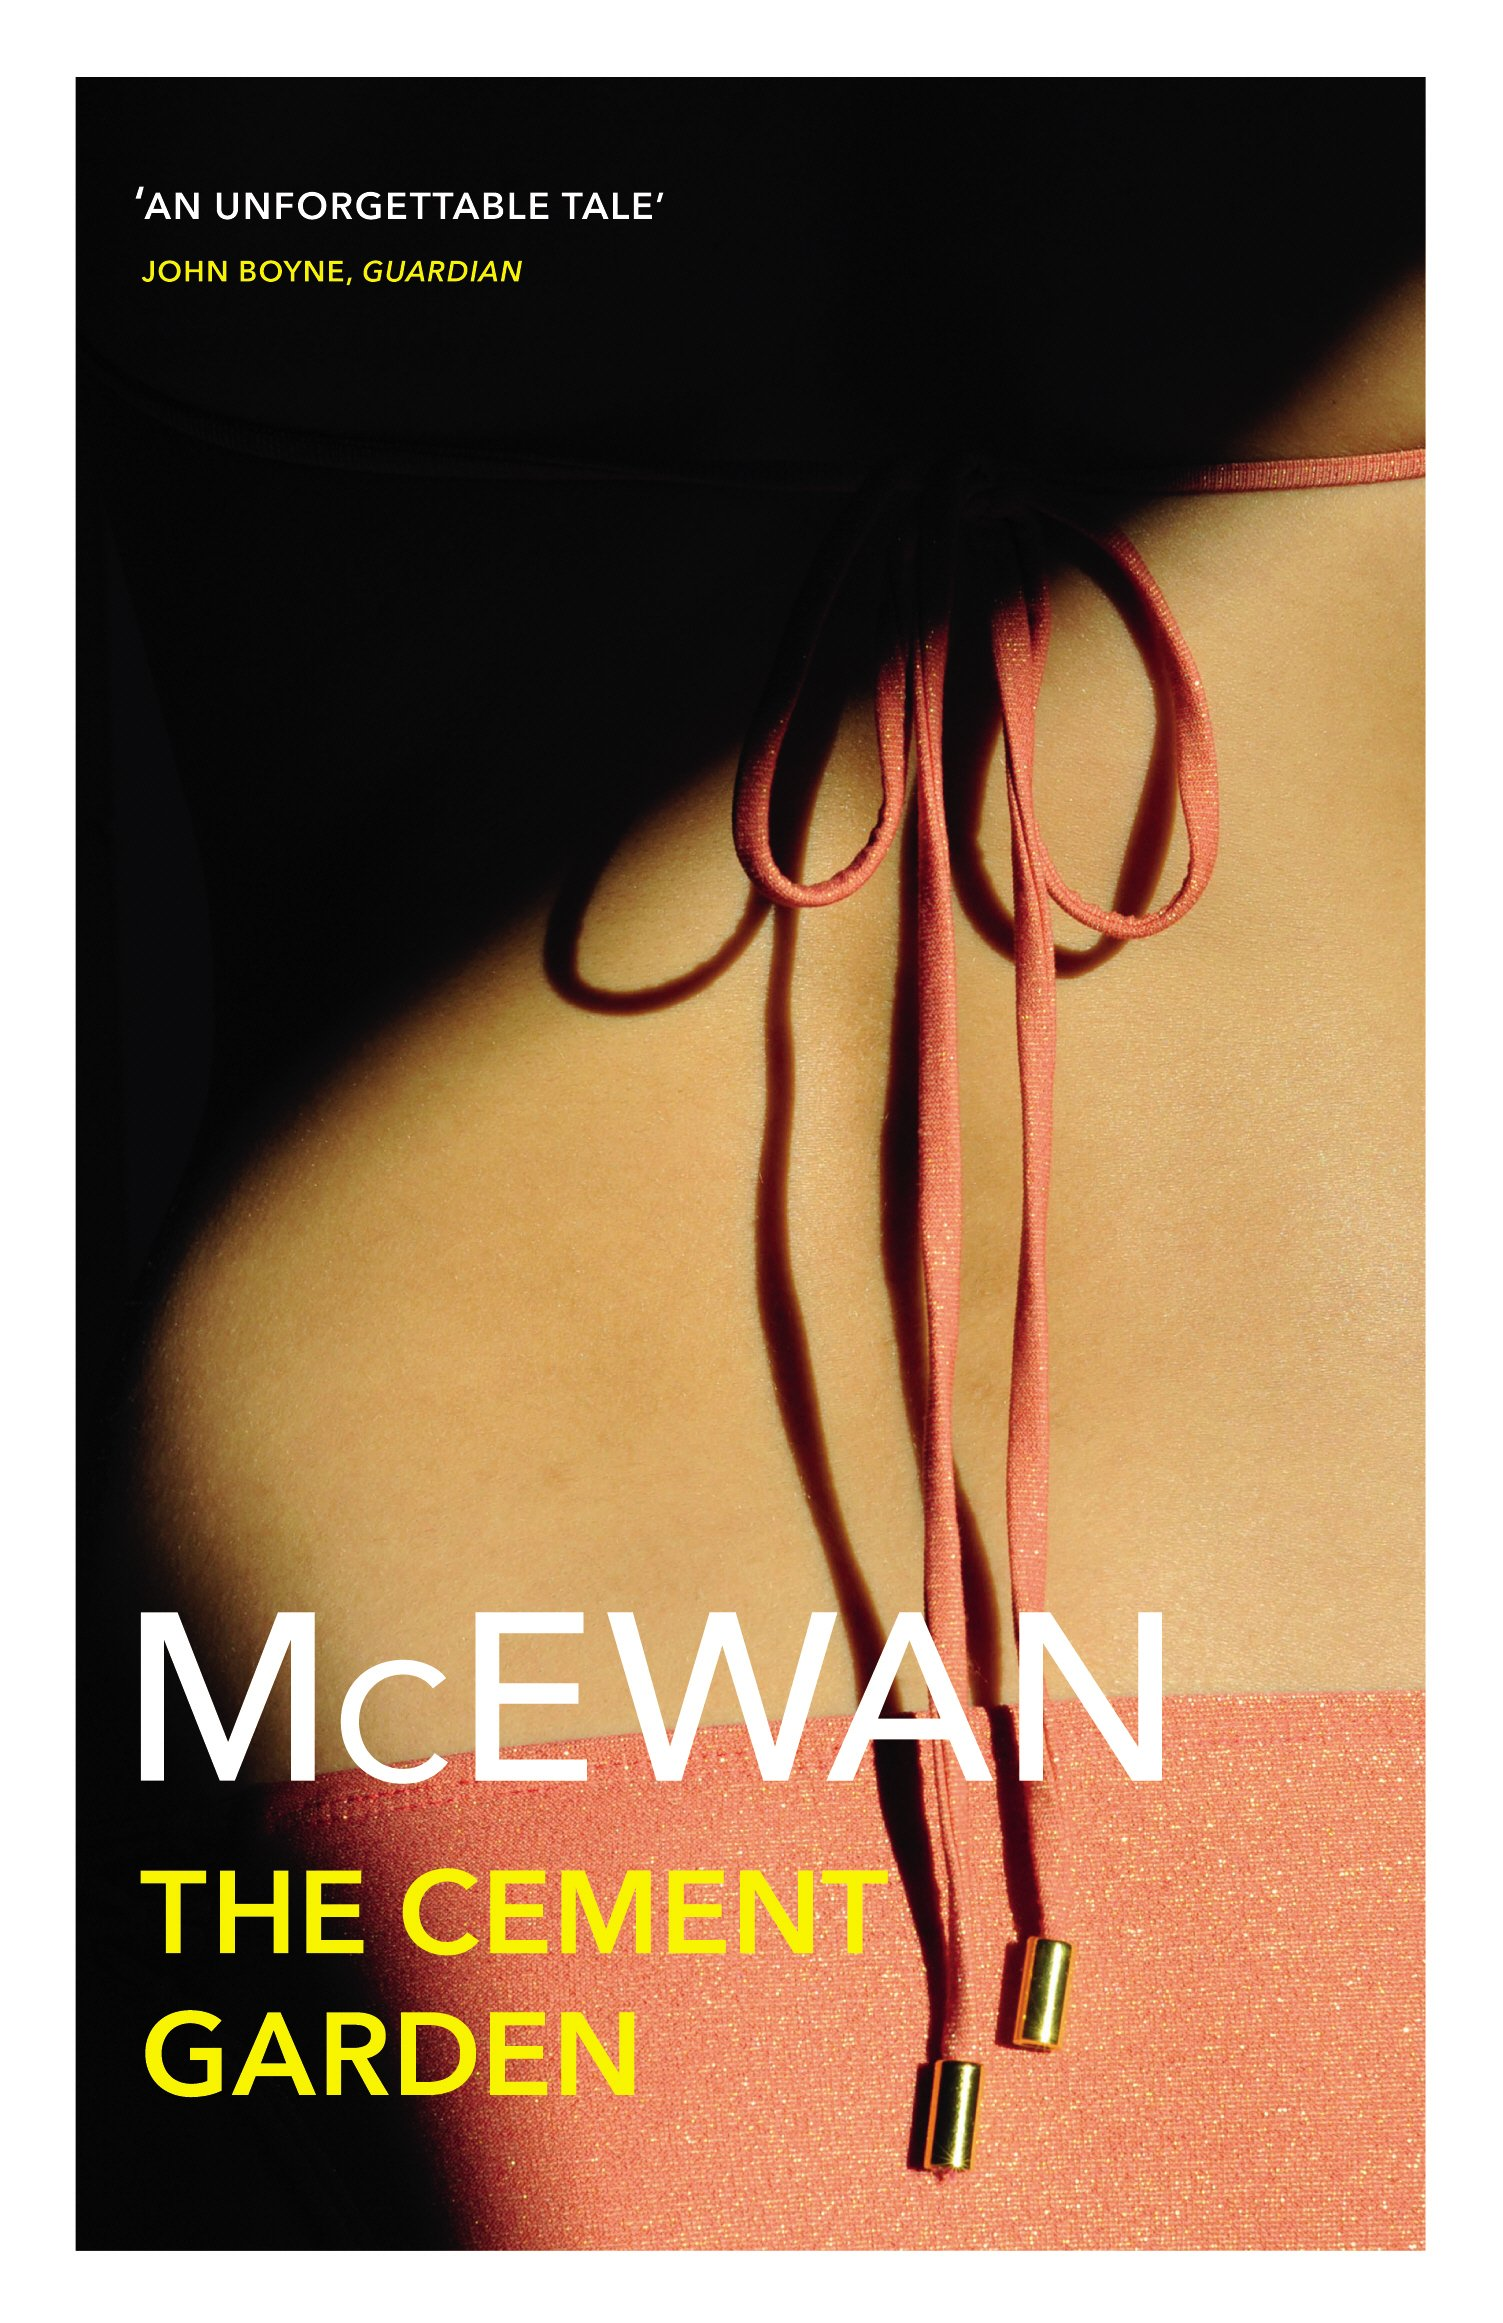 Buy THE CEMENT GARDEN by Ian McEwan